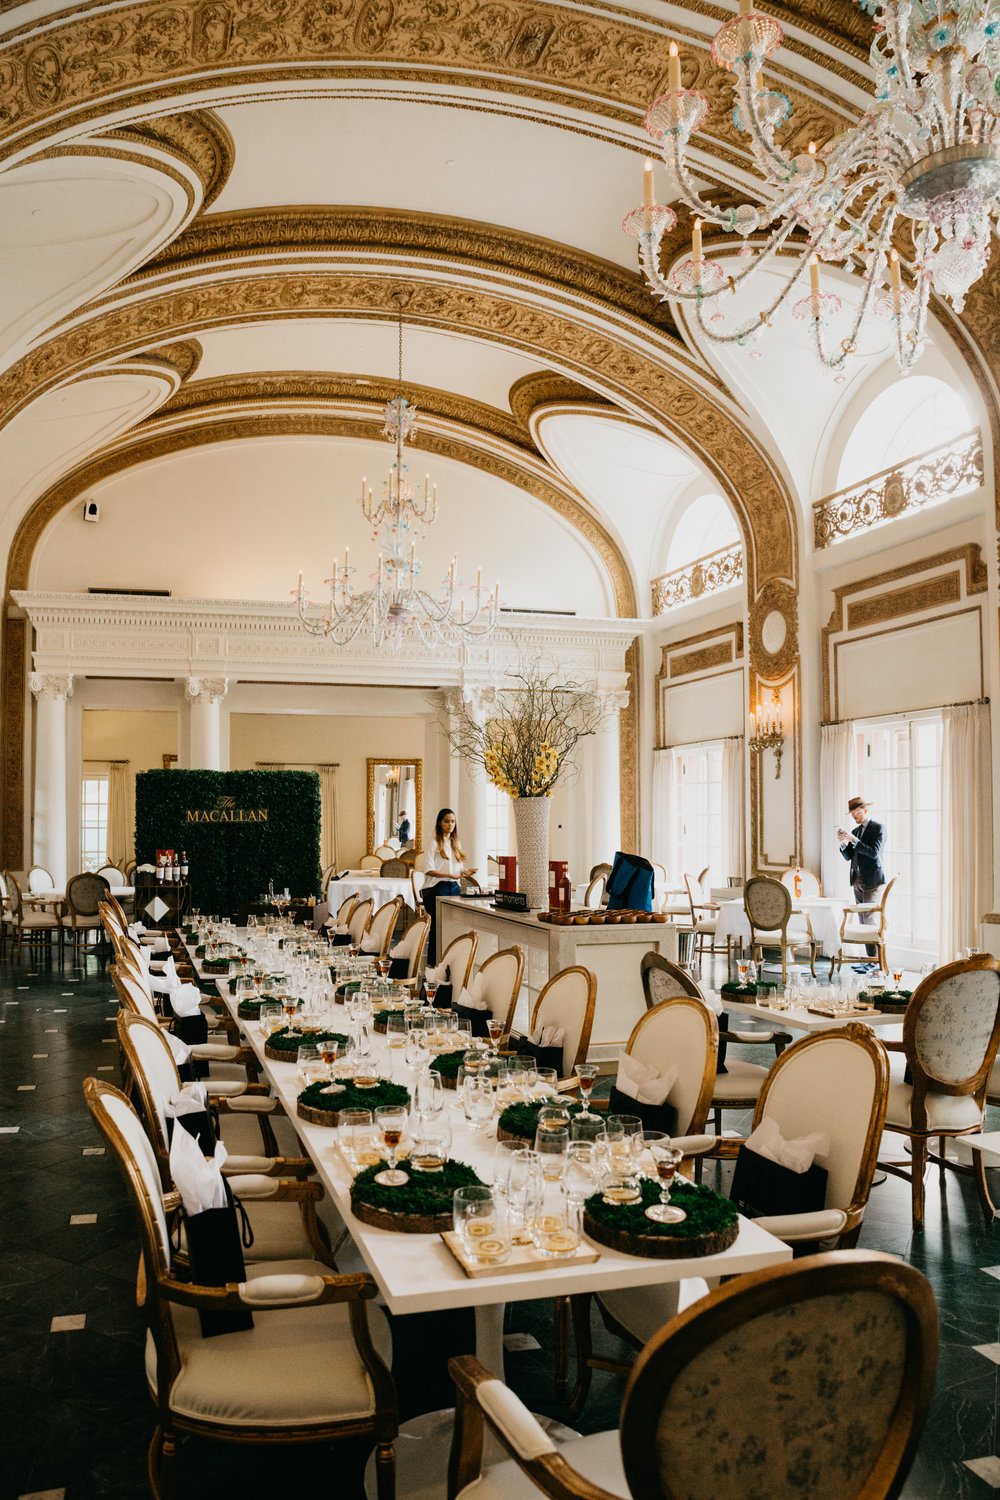 The French Room inside the Adolphus Hotel in Dallas, TX. photo by Collin Sansom